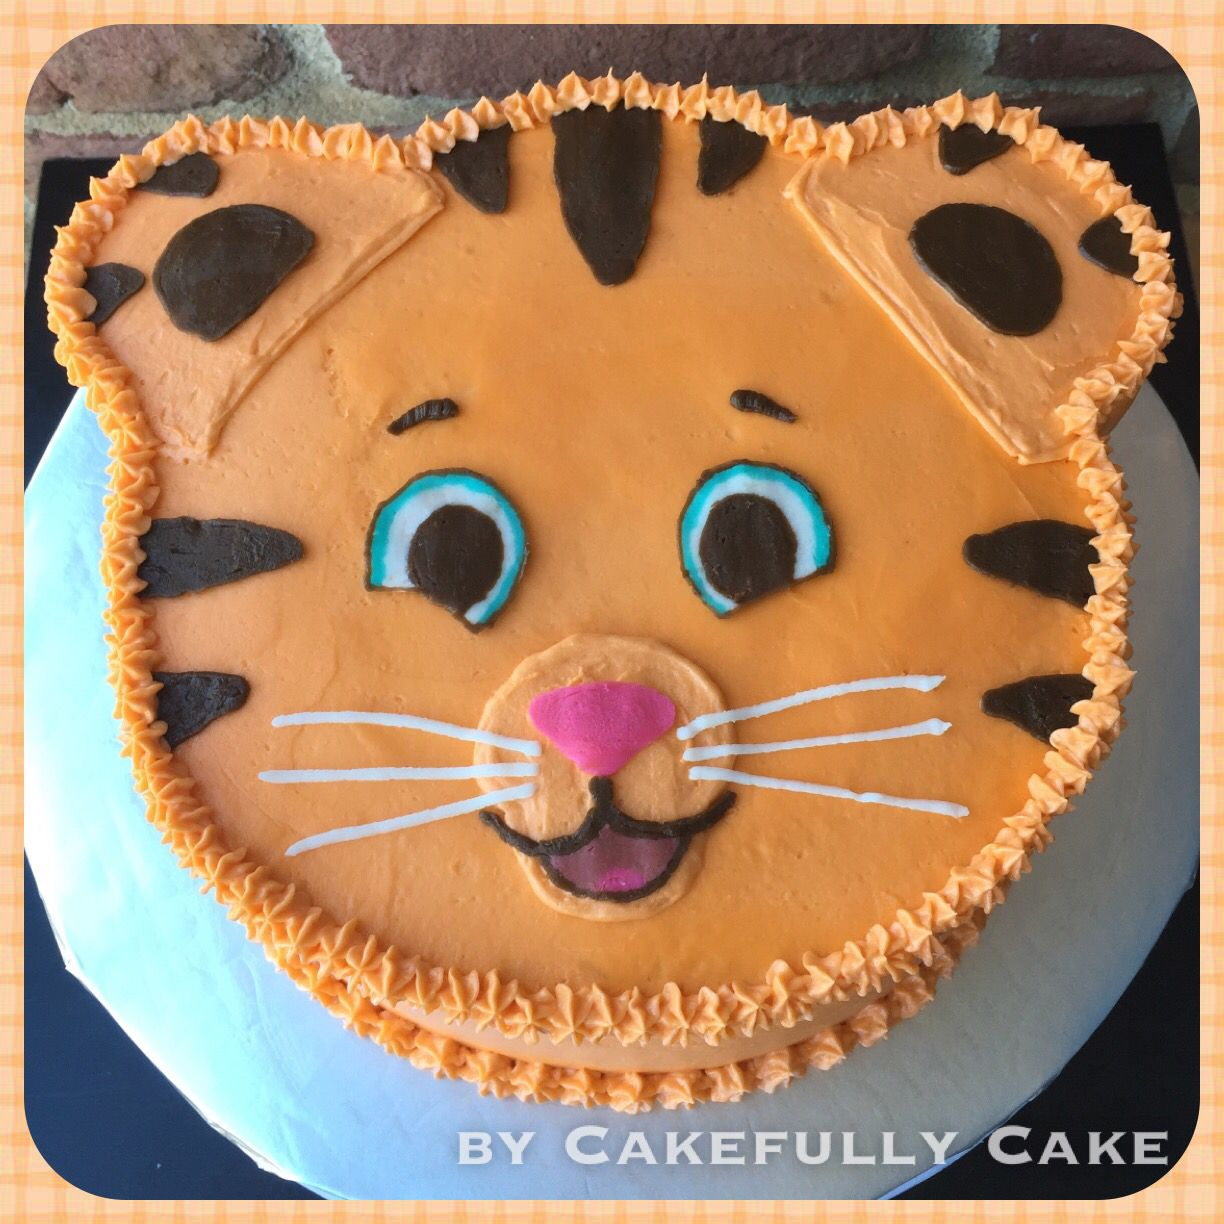 Birthday Cake Images For Daniel : Daniel Tiger Cake -by Cakefully Cake Cakefully Cake ...